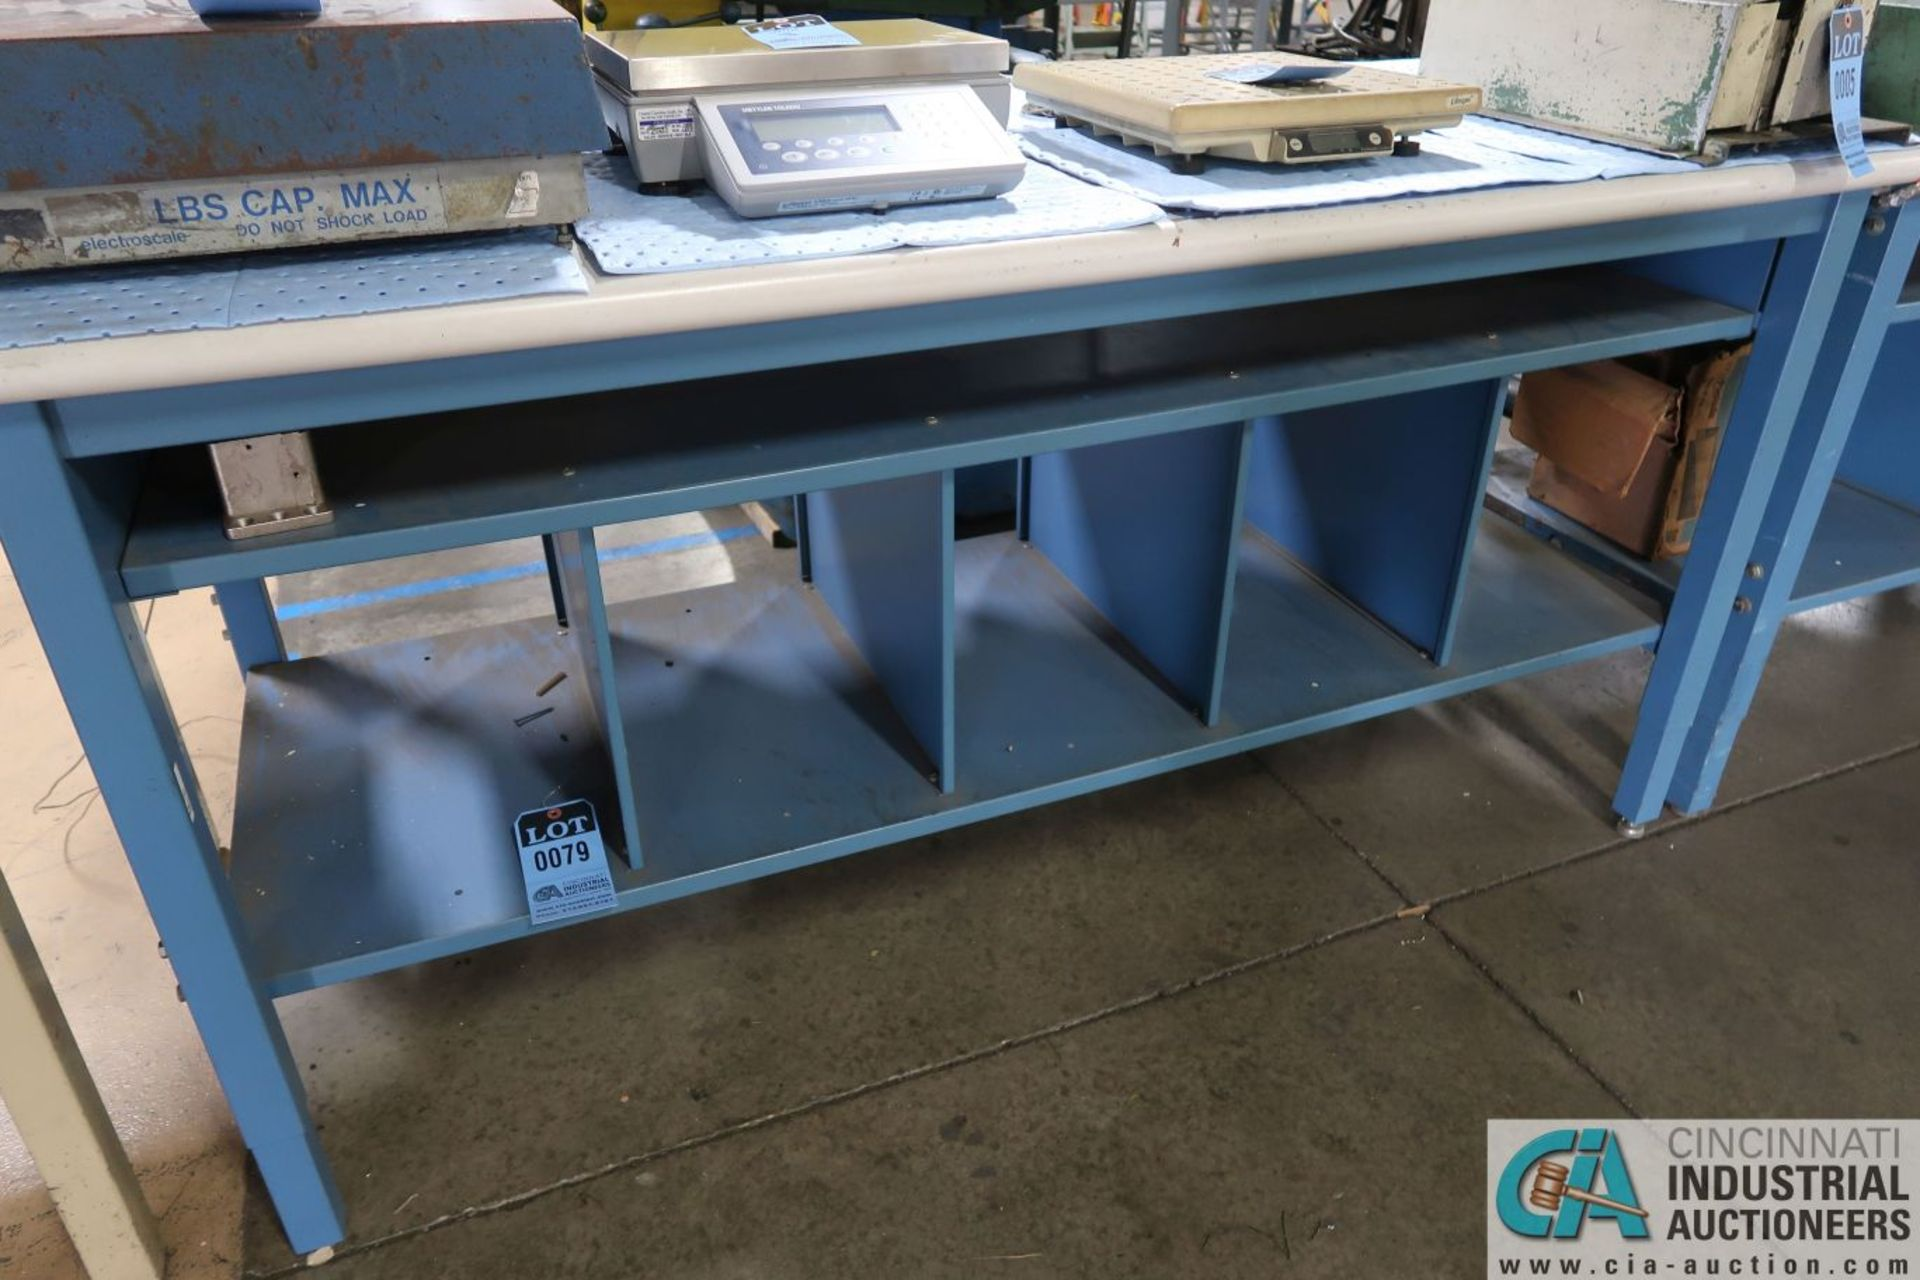 """ADJUSTABLE HEIGHT STEEL FRAME LAMINATED TOP WORK STATIONS, (1) 30"""" X 72"""" AND (1) 30"""" X 60"""" - Image 2 of 3"""